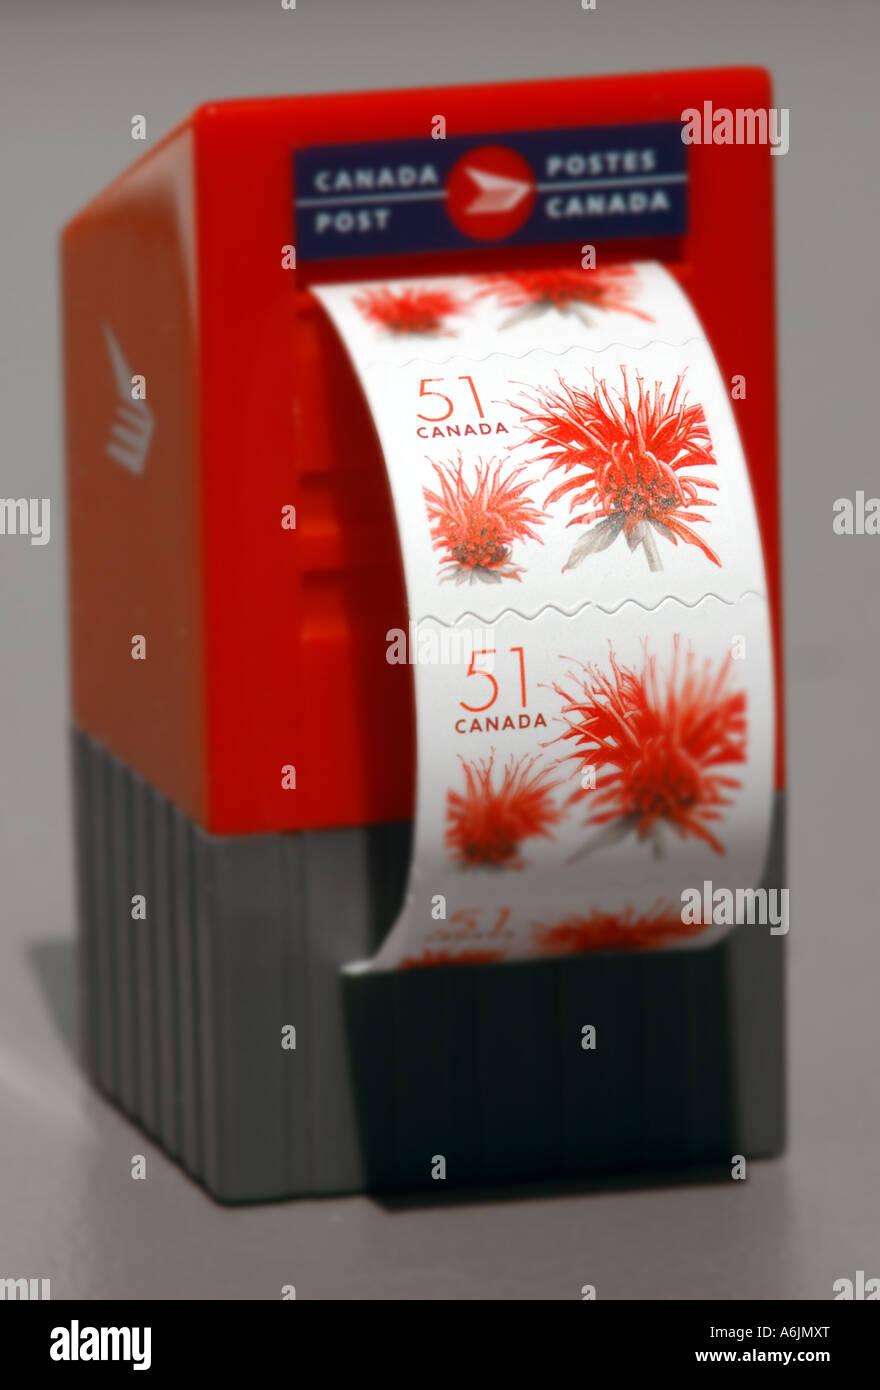 Miniature Canada Post Stamp Dispenser In The Shape Of A Mailbox And 51 Cent Stamps